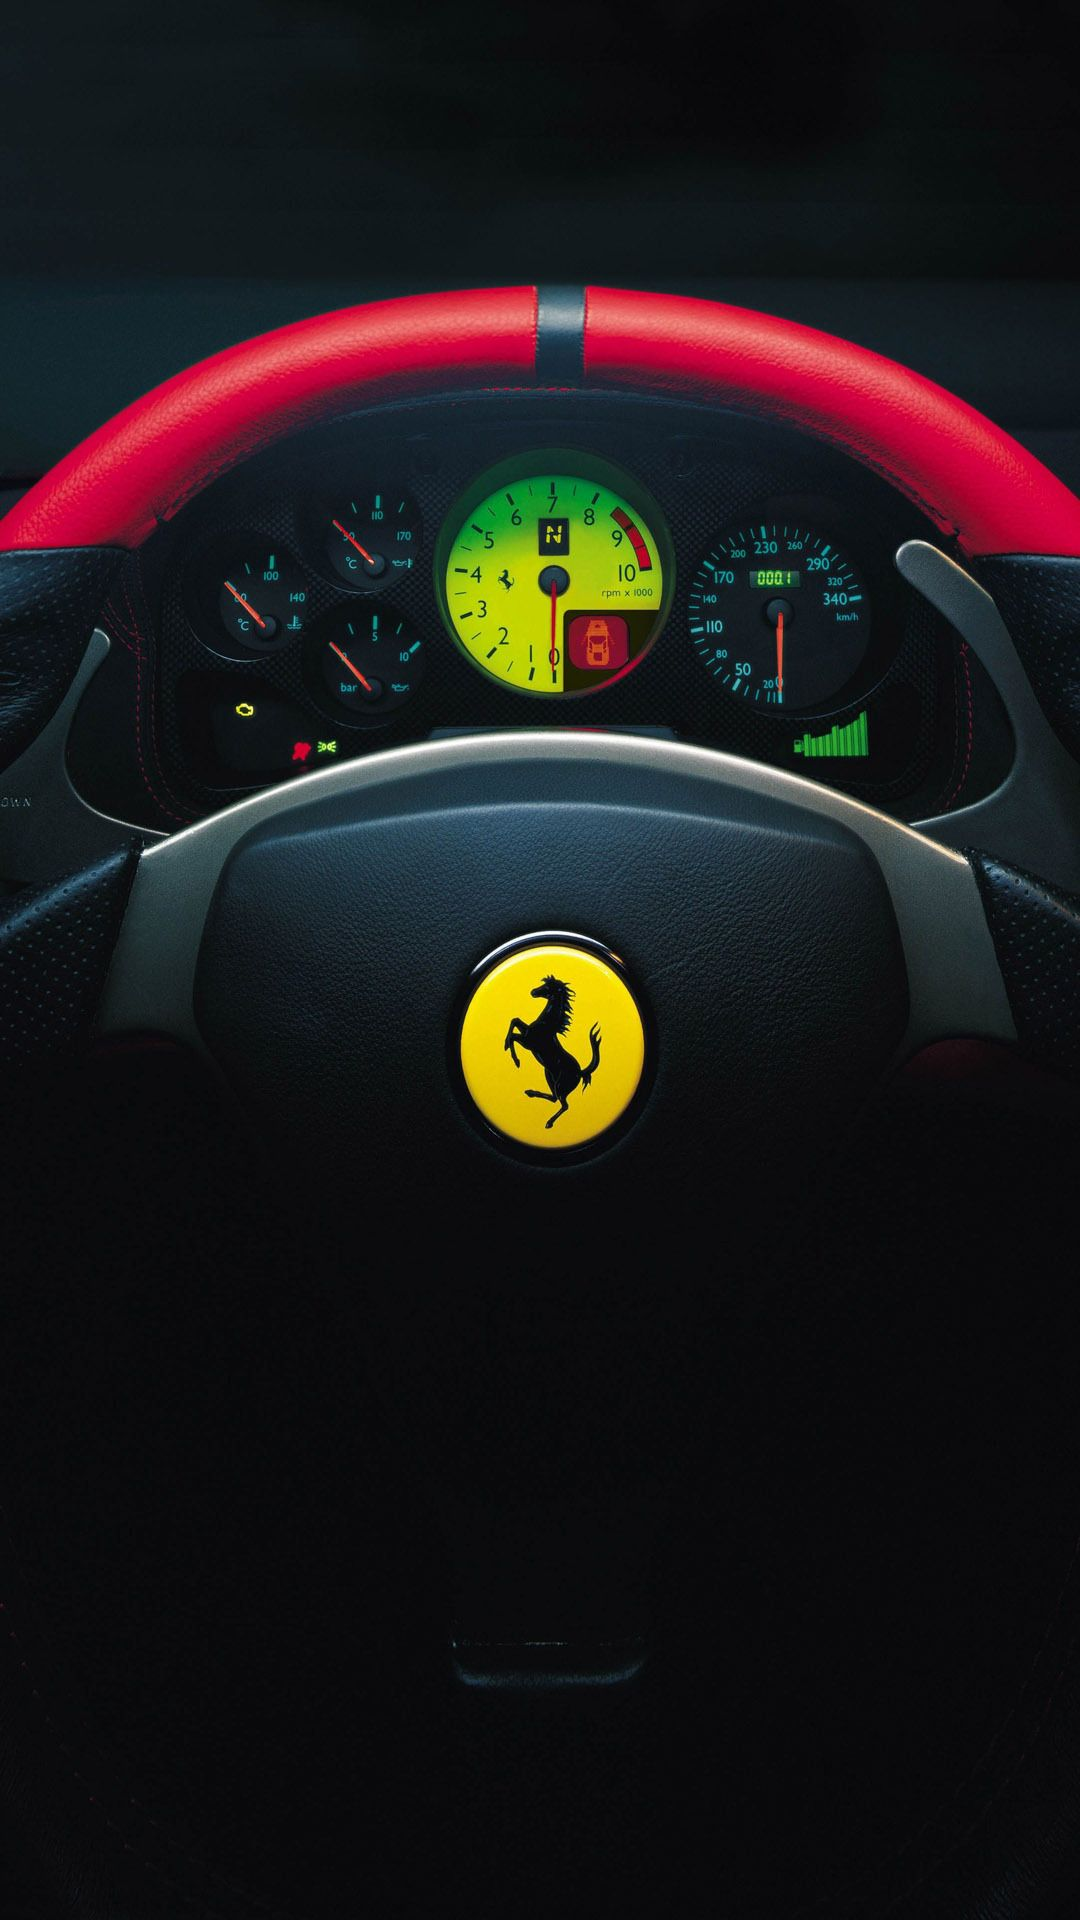 Ferrari 360 Challenge Stradale Steering Wheel Car Mobile Wallpaper 1080x1920 6790 1609967540